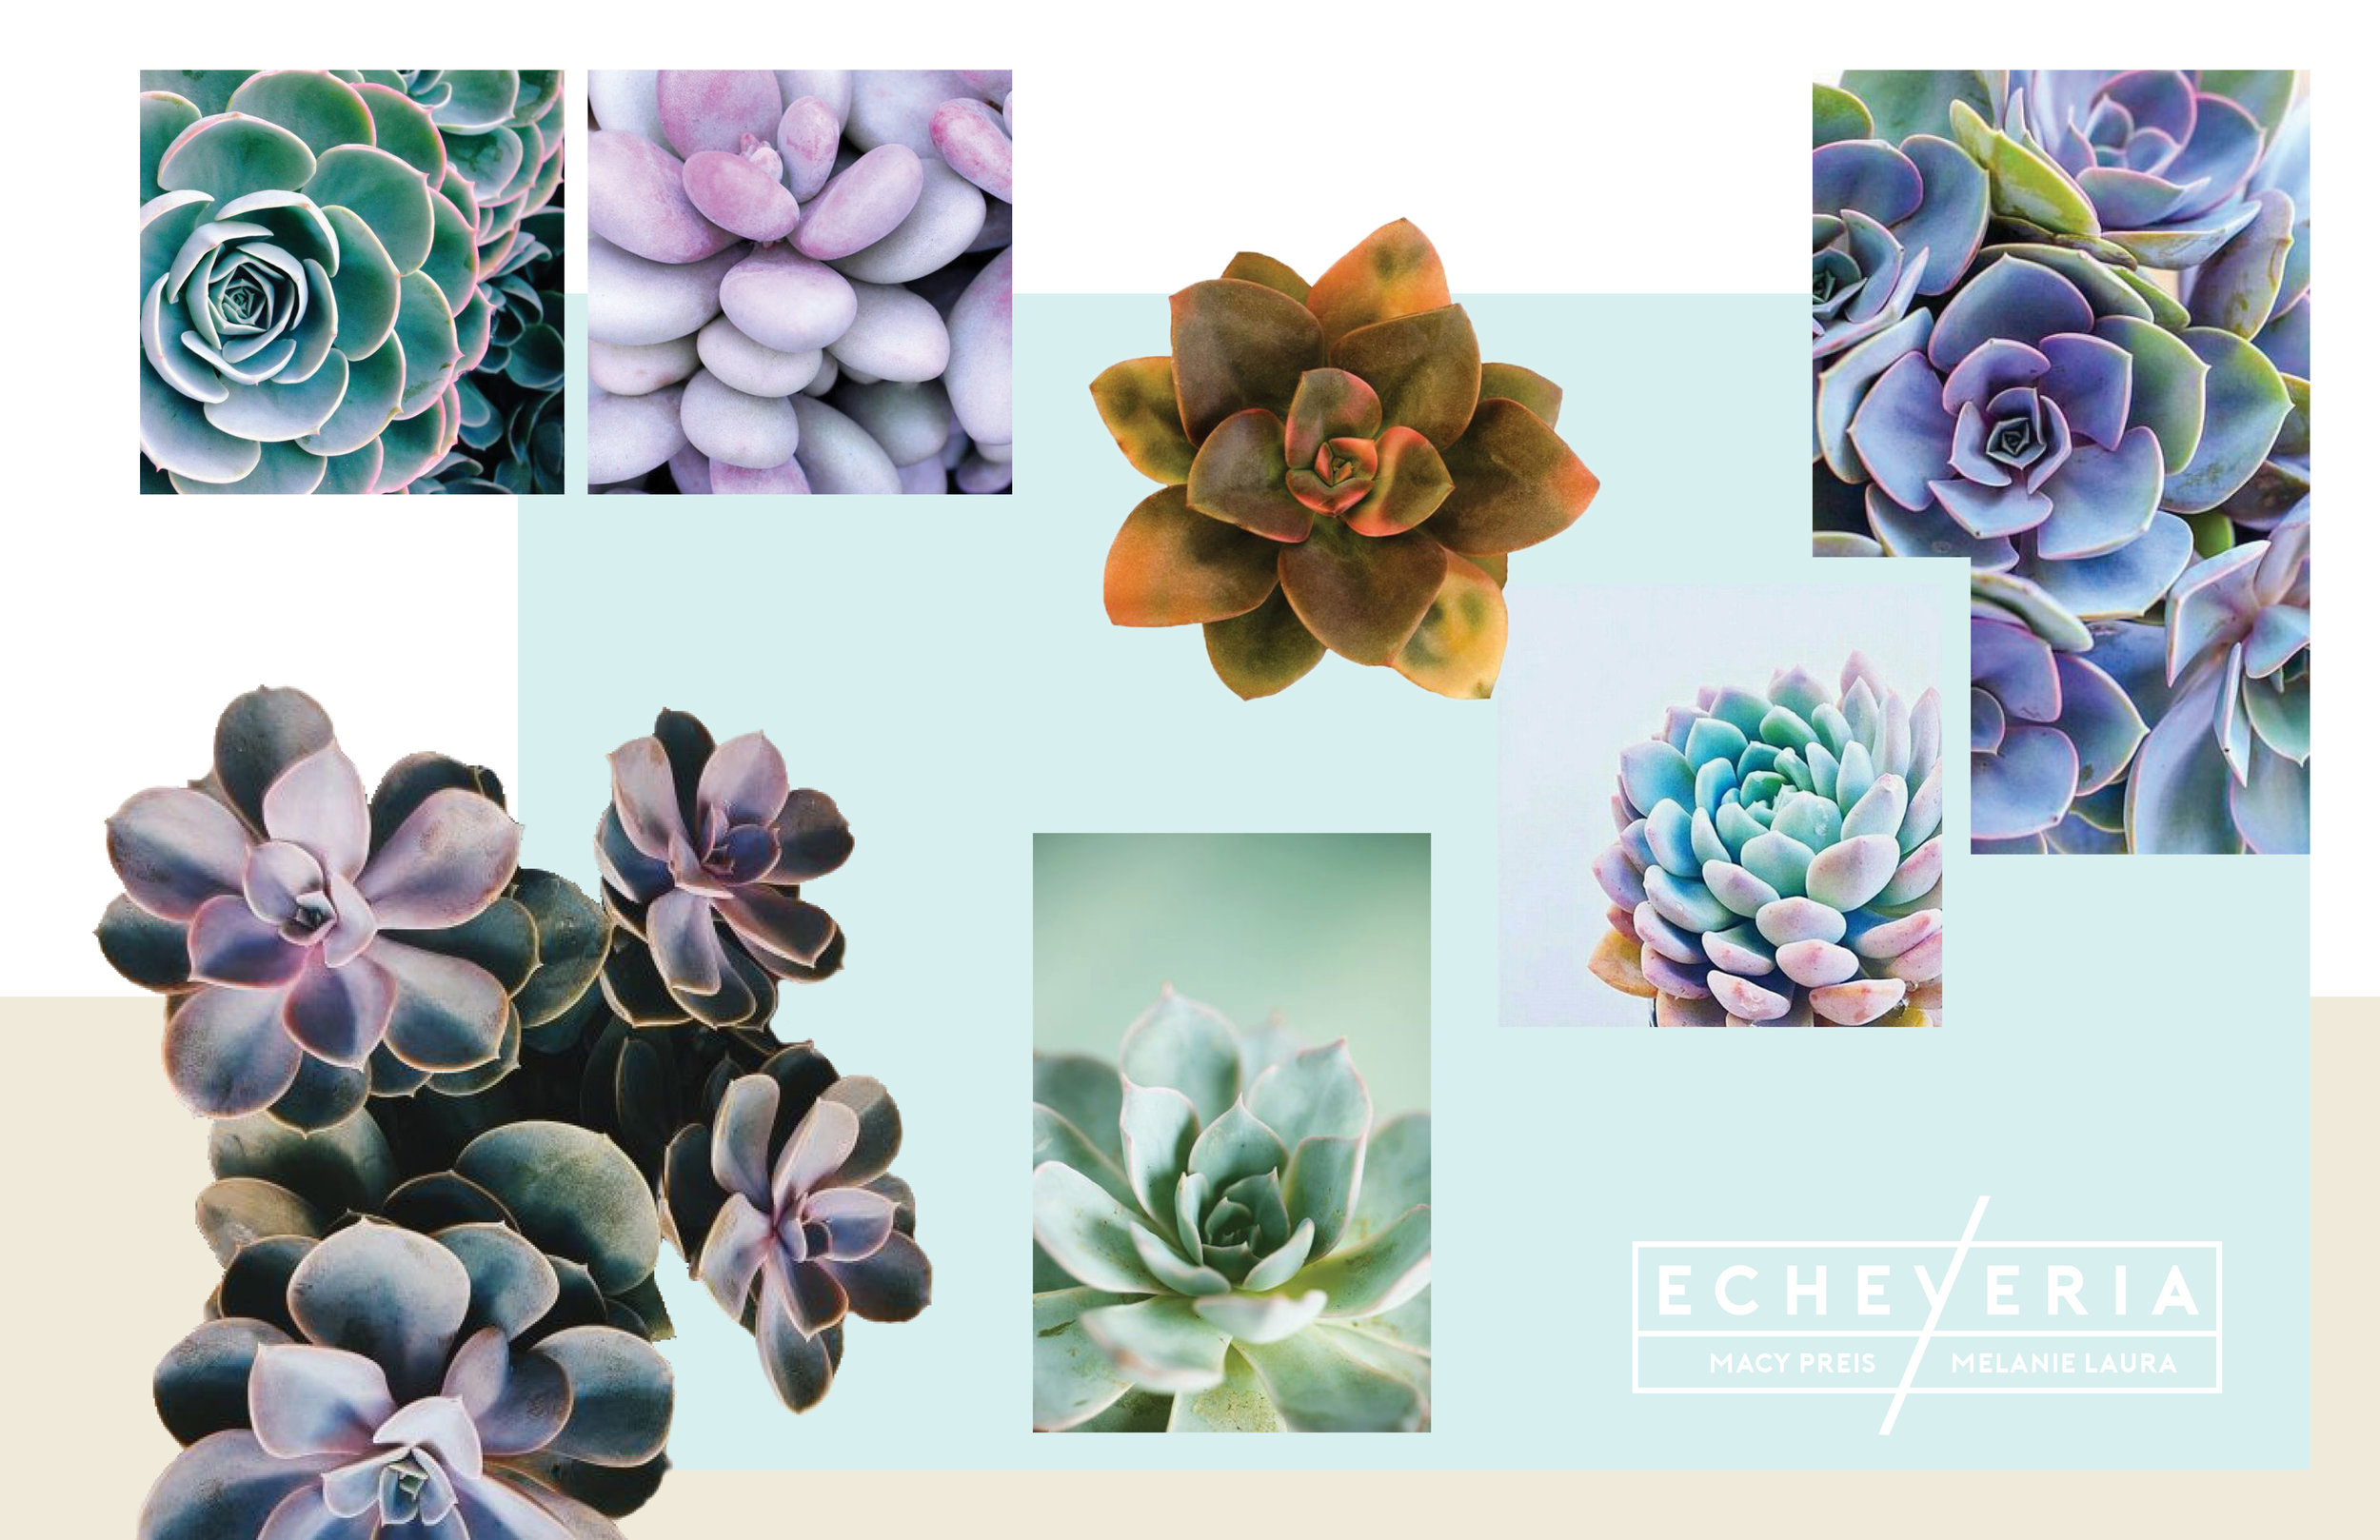 Echeveria Mood Board.jpg